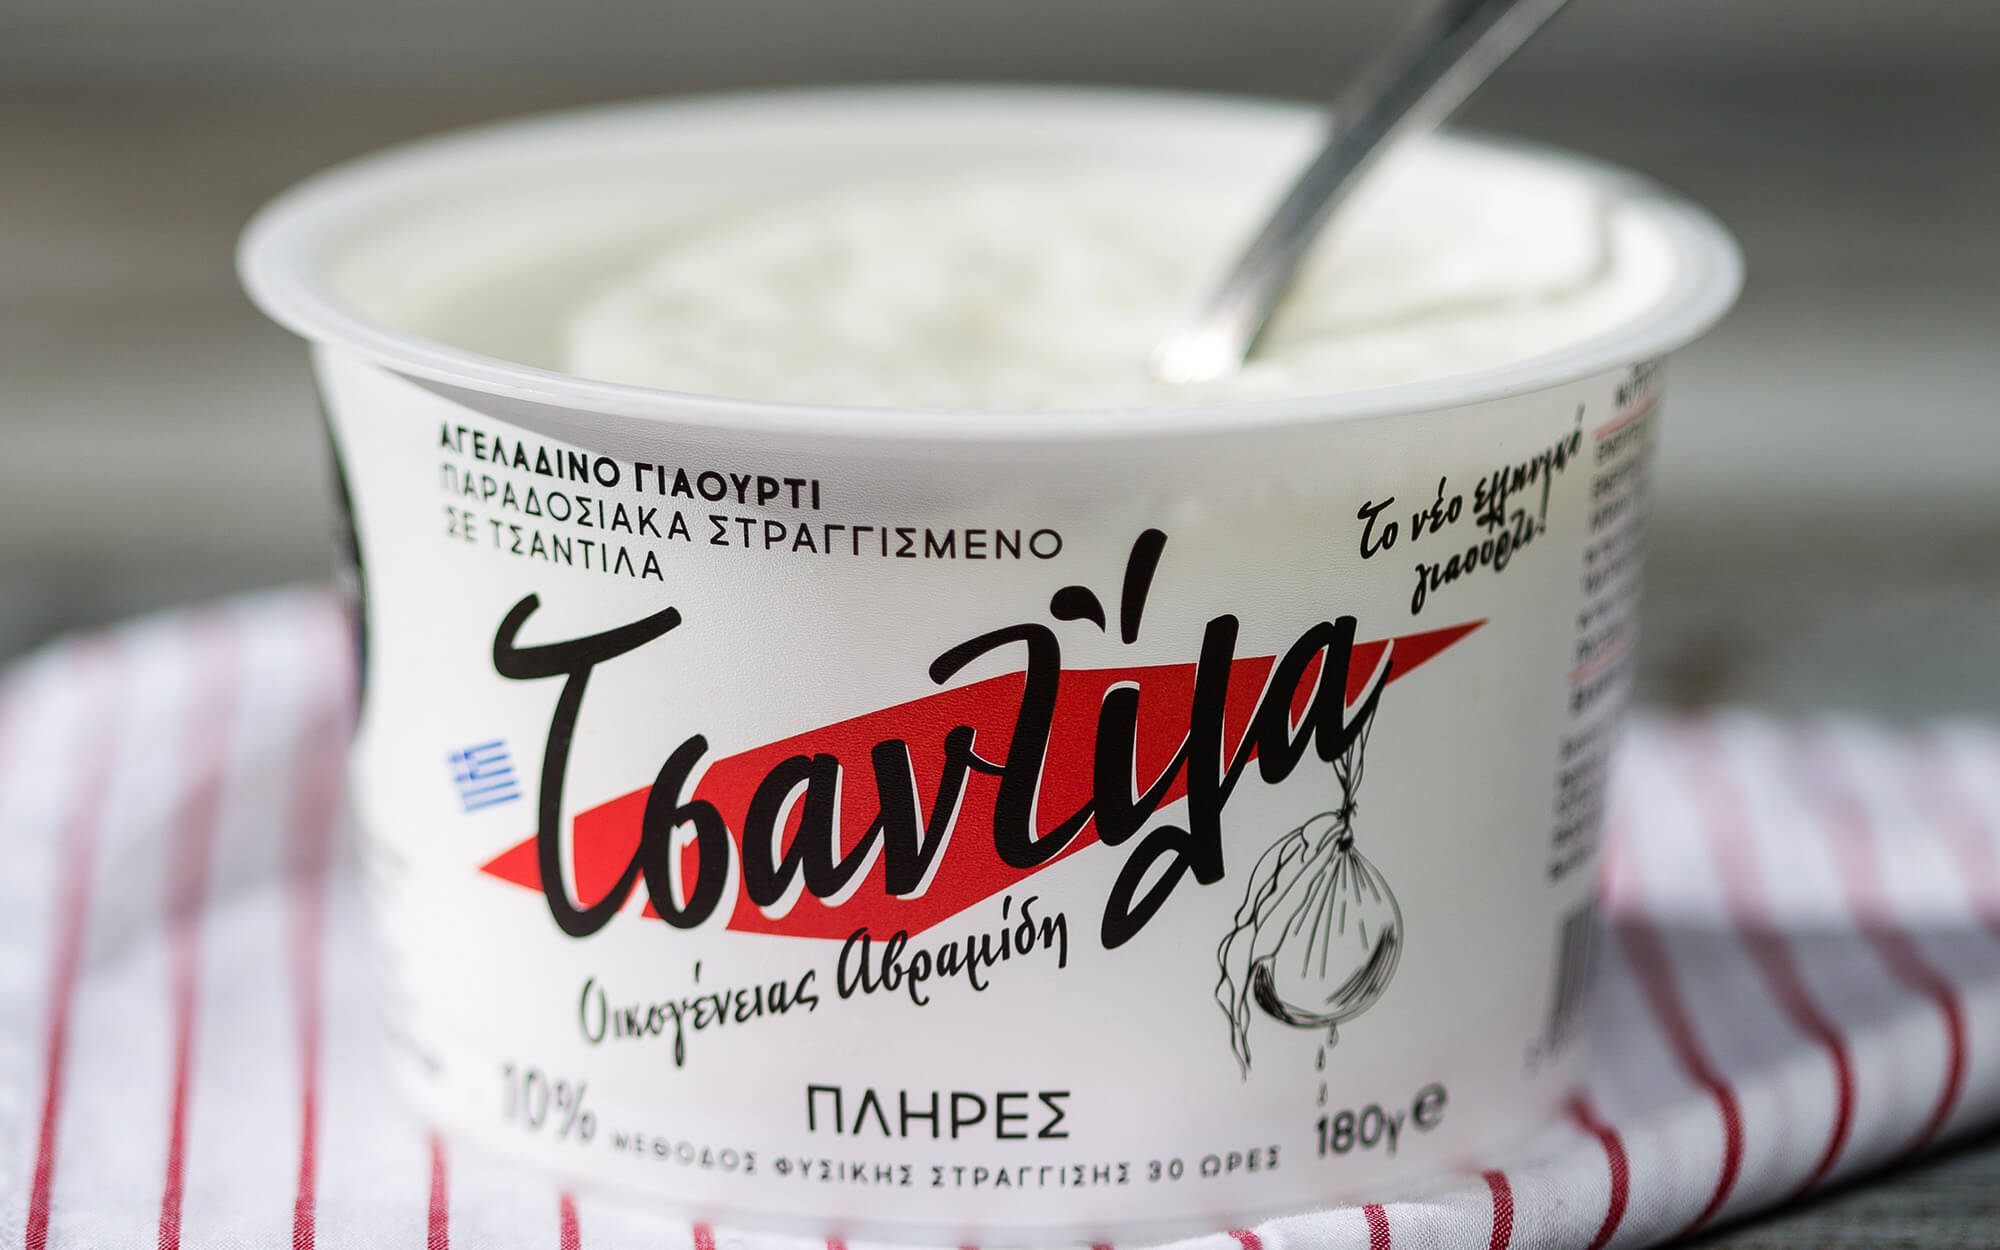 Sophia Georgopoulou | Design - Avramidis Family Tsantilla Strained Yogurt10.jpg